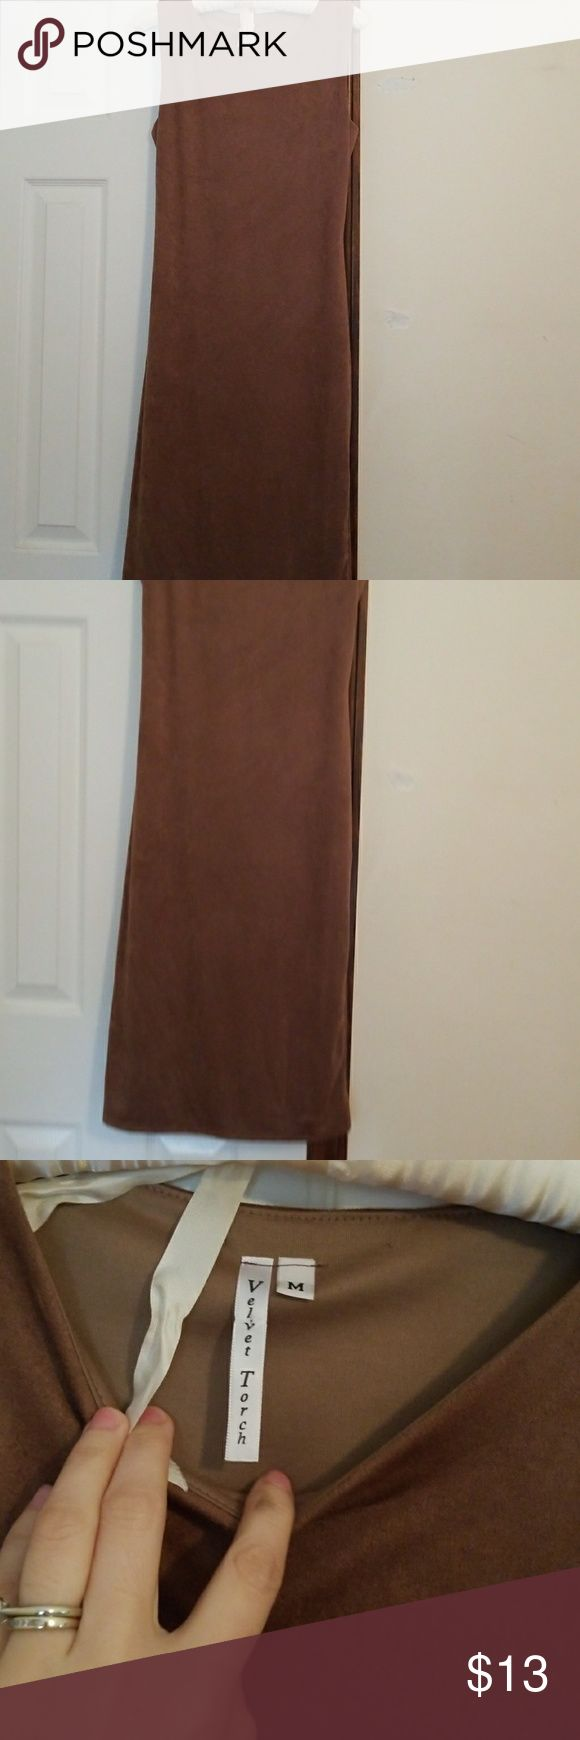 New suede camel bodycon dress size M Suede material soft has extra cover under dress .  Never worn. Like new . Dresses Midi